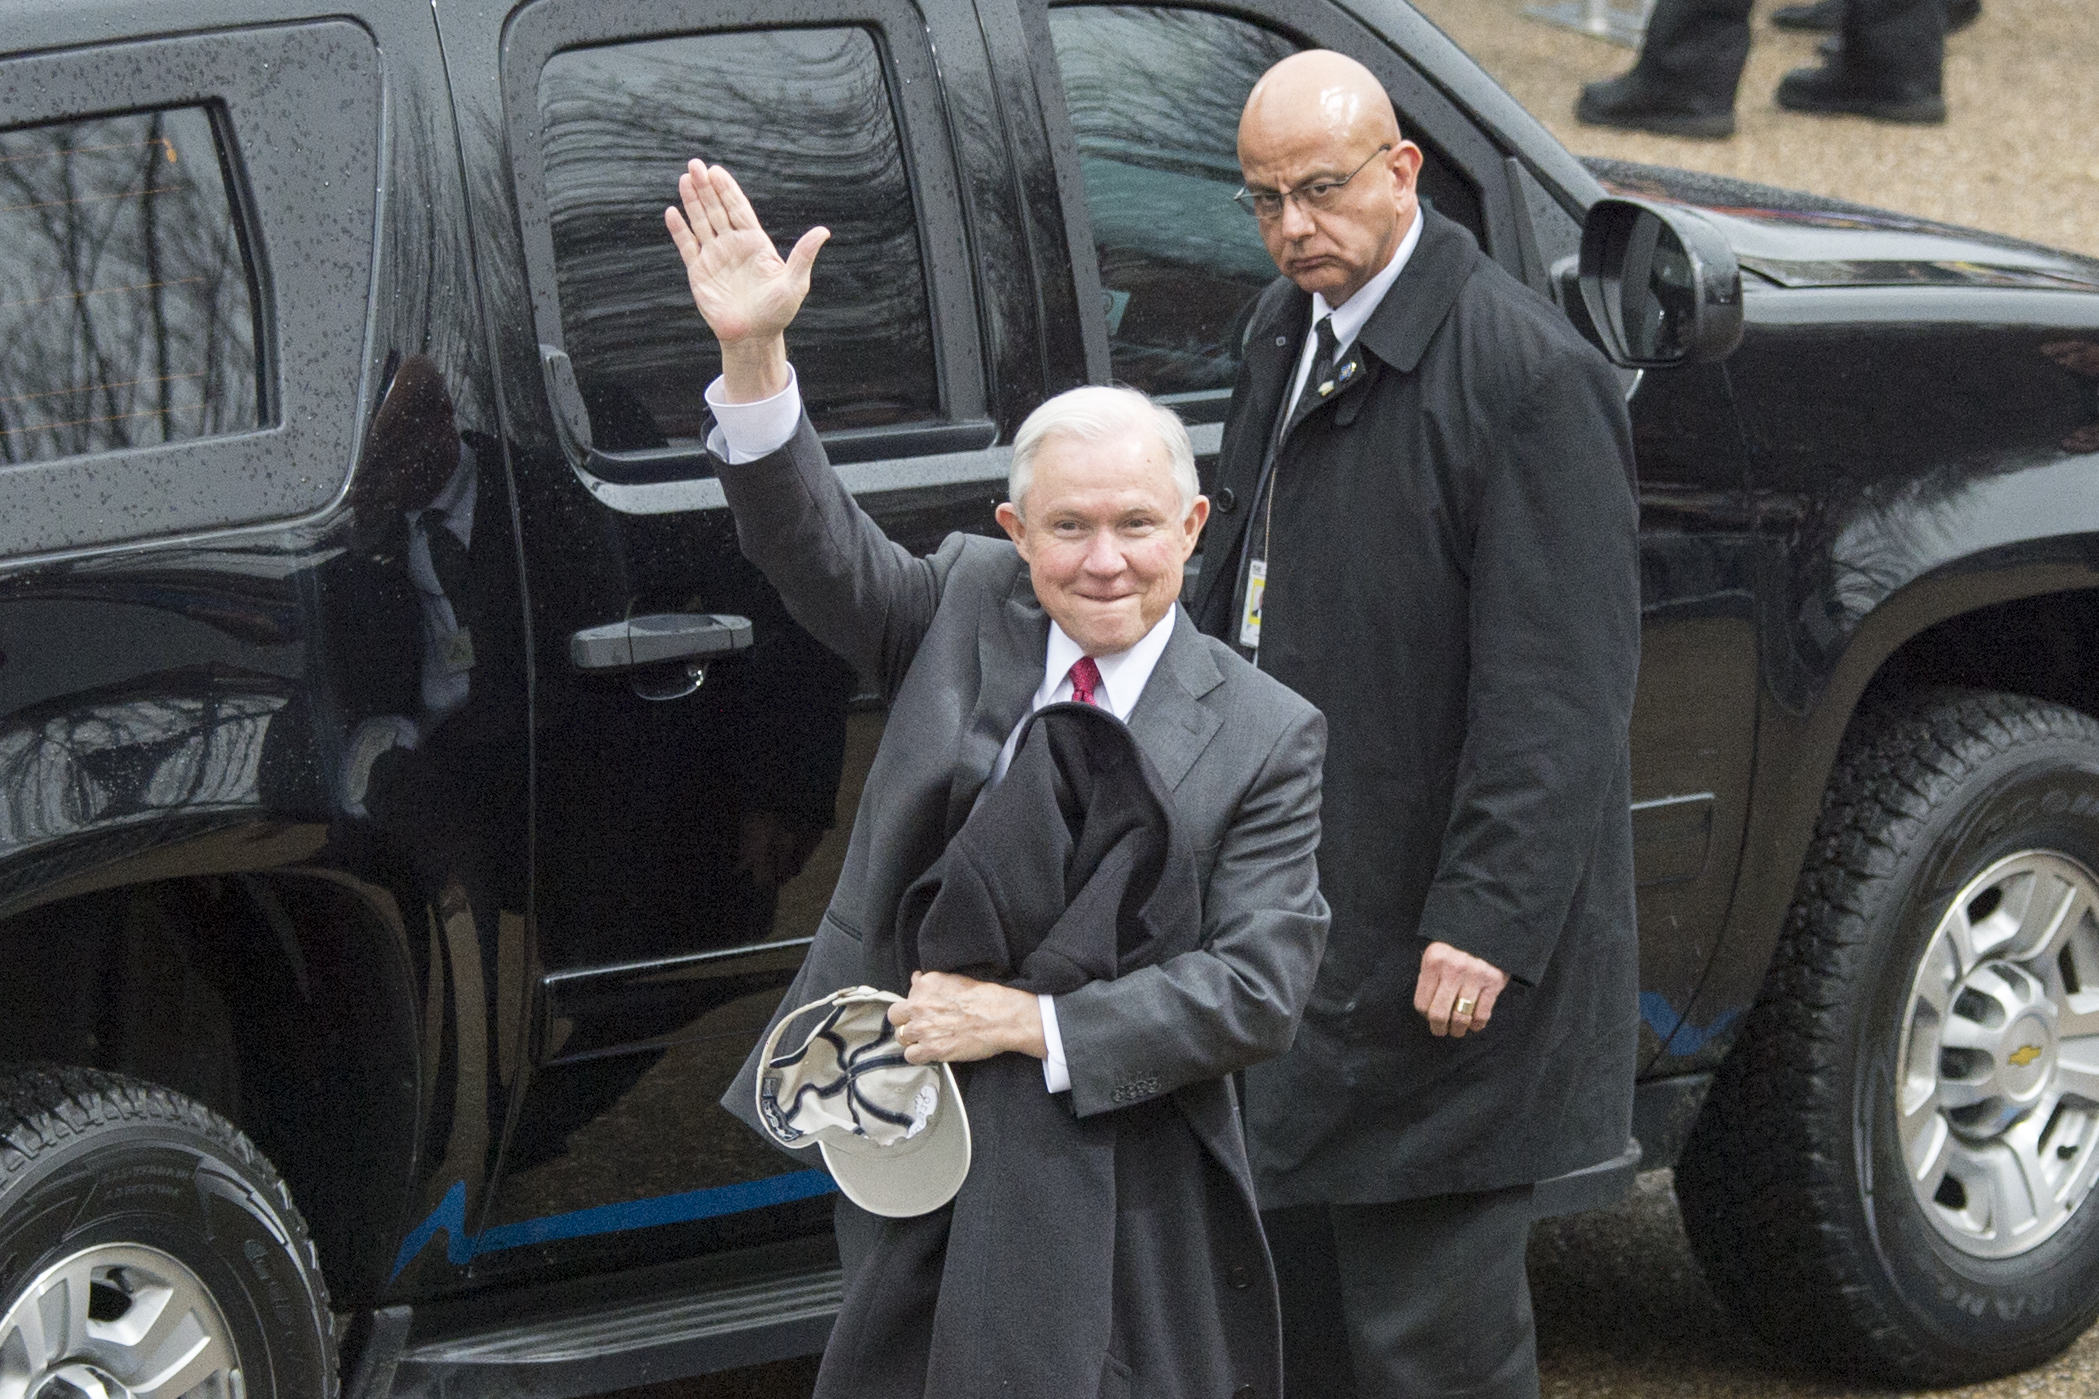 Senator_Jeff_Sessions_arrives_before_the_58th_Presidential_Inauguration_Parade,_Jan._20,_2017.jpg